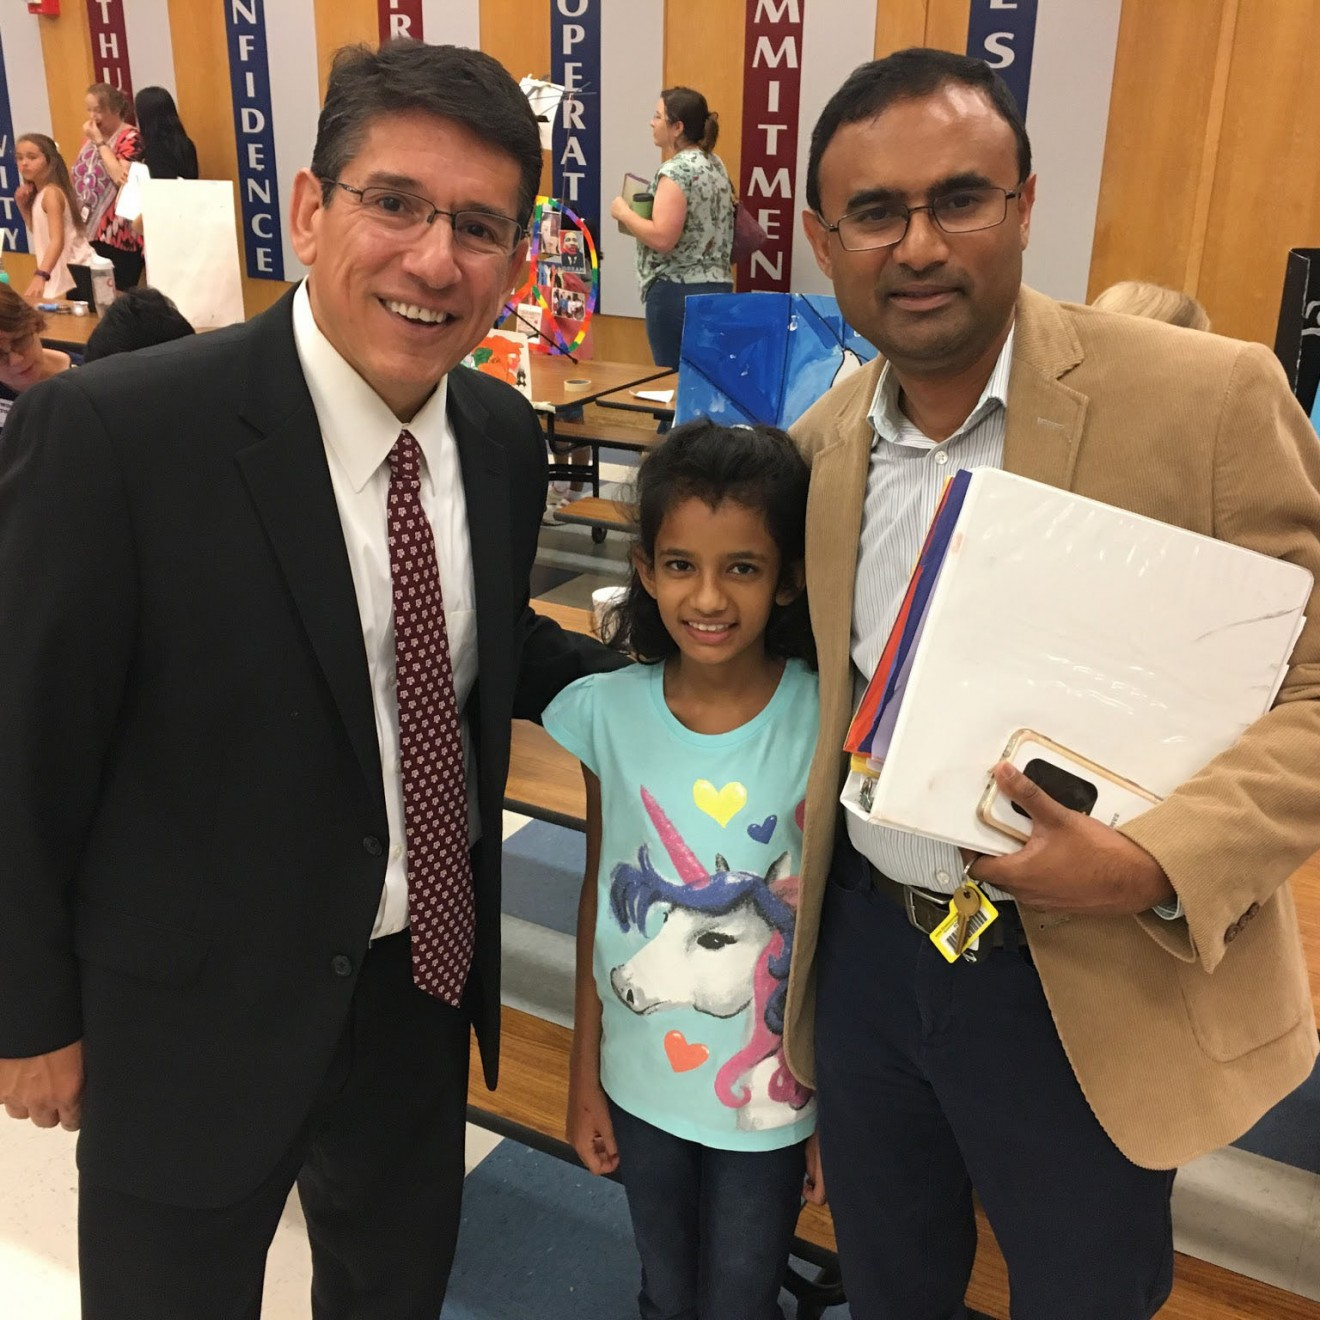 Superintendent's Message: With appreciation for an outstanding school year